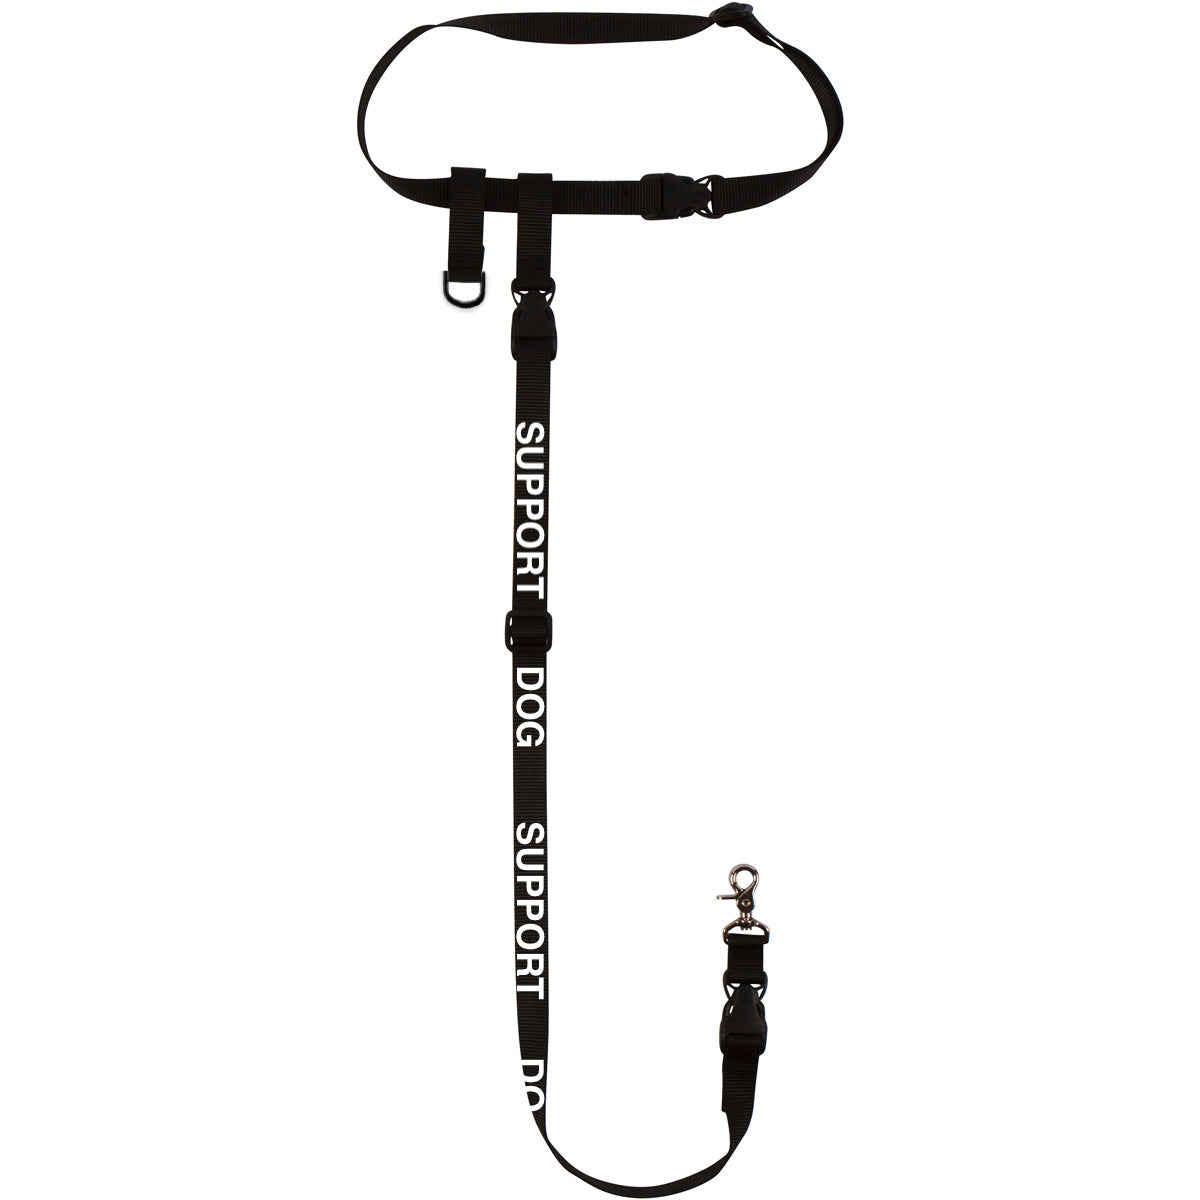 Regular Dog, Support Dog Hands Free Leash